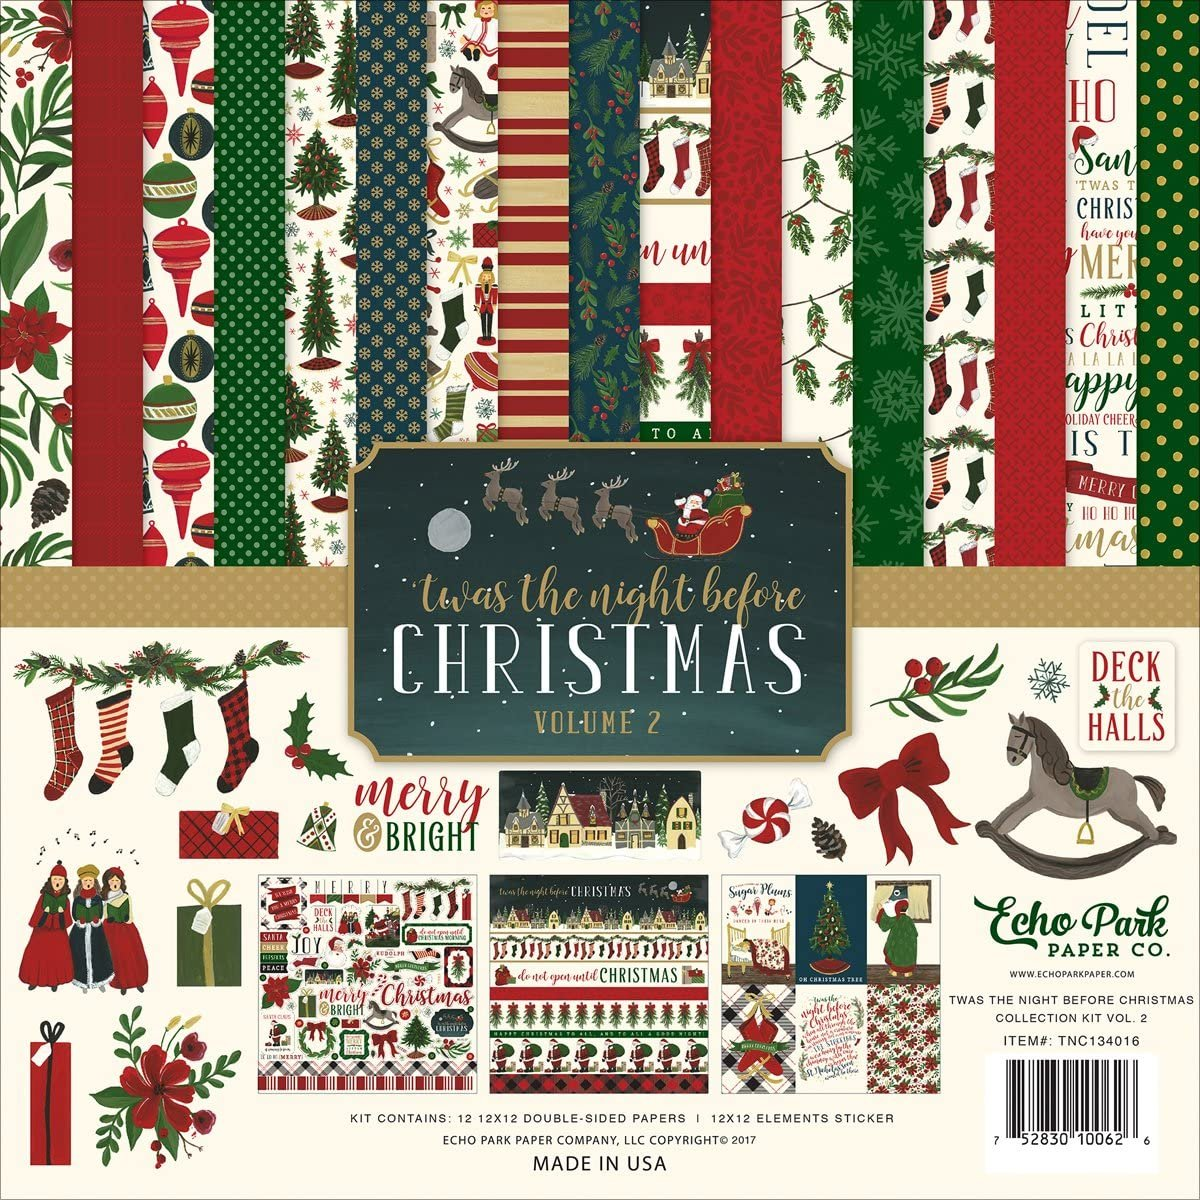 Echo Park Collection Kit 12x12 - 'Twas the Night Before Christmas Vol. 2